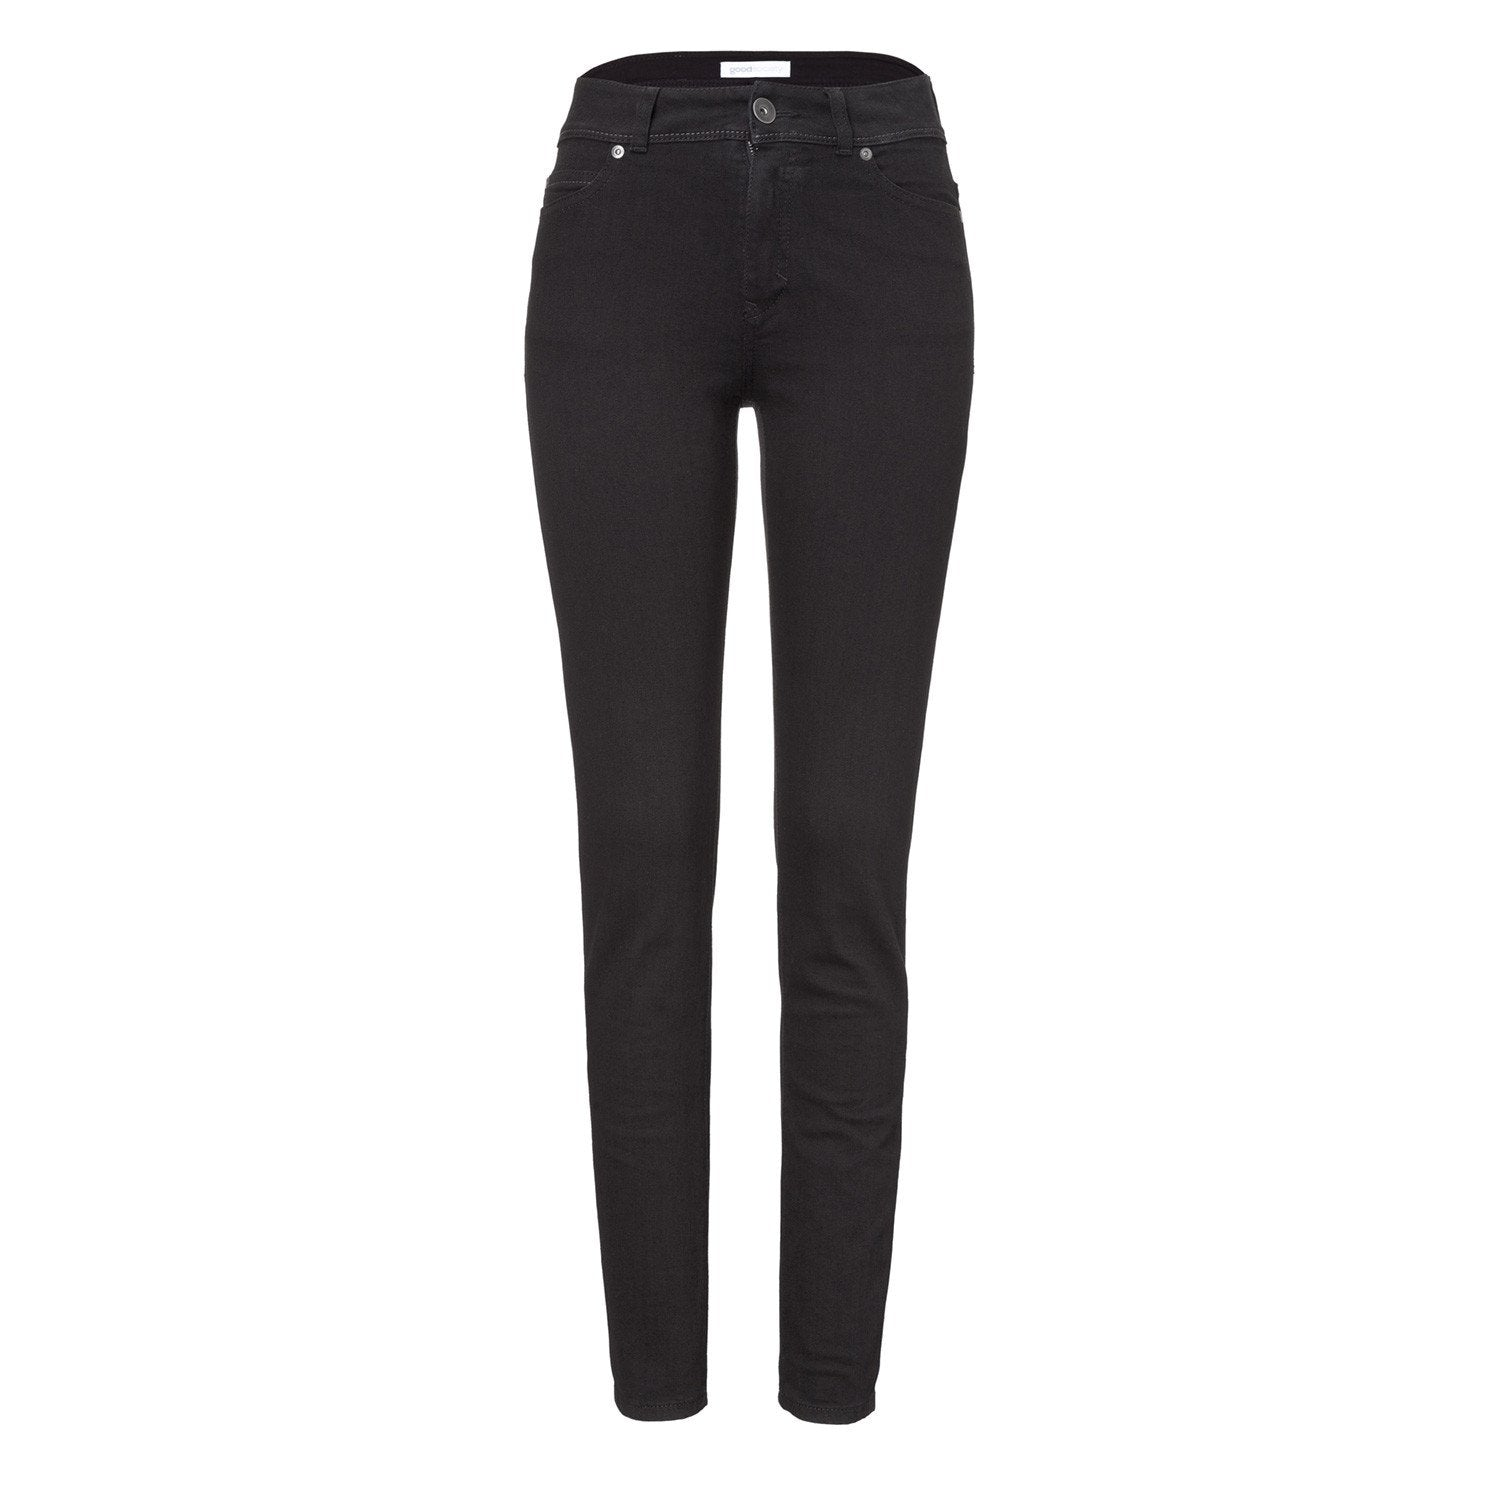 d925347536d7 Jeans - Womens High Rise Slim Jeans - Black One Wash